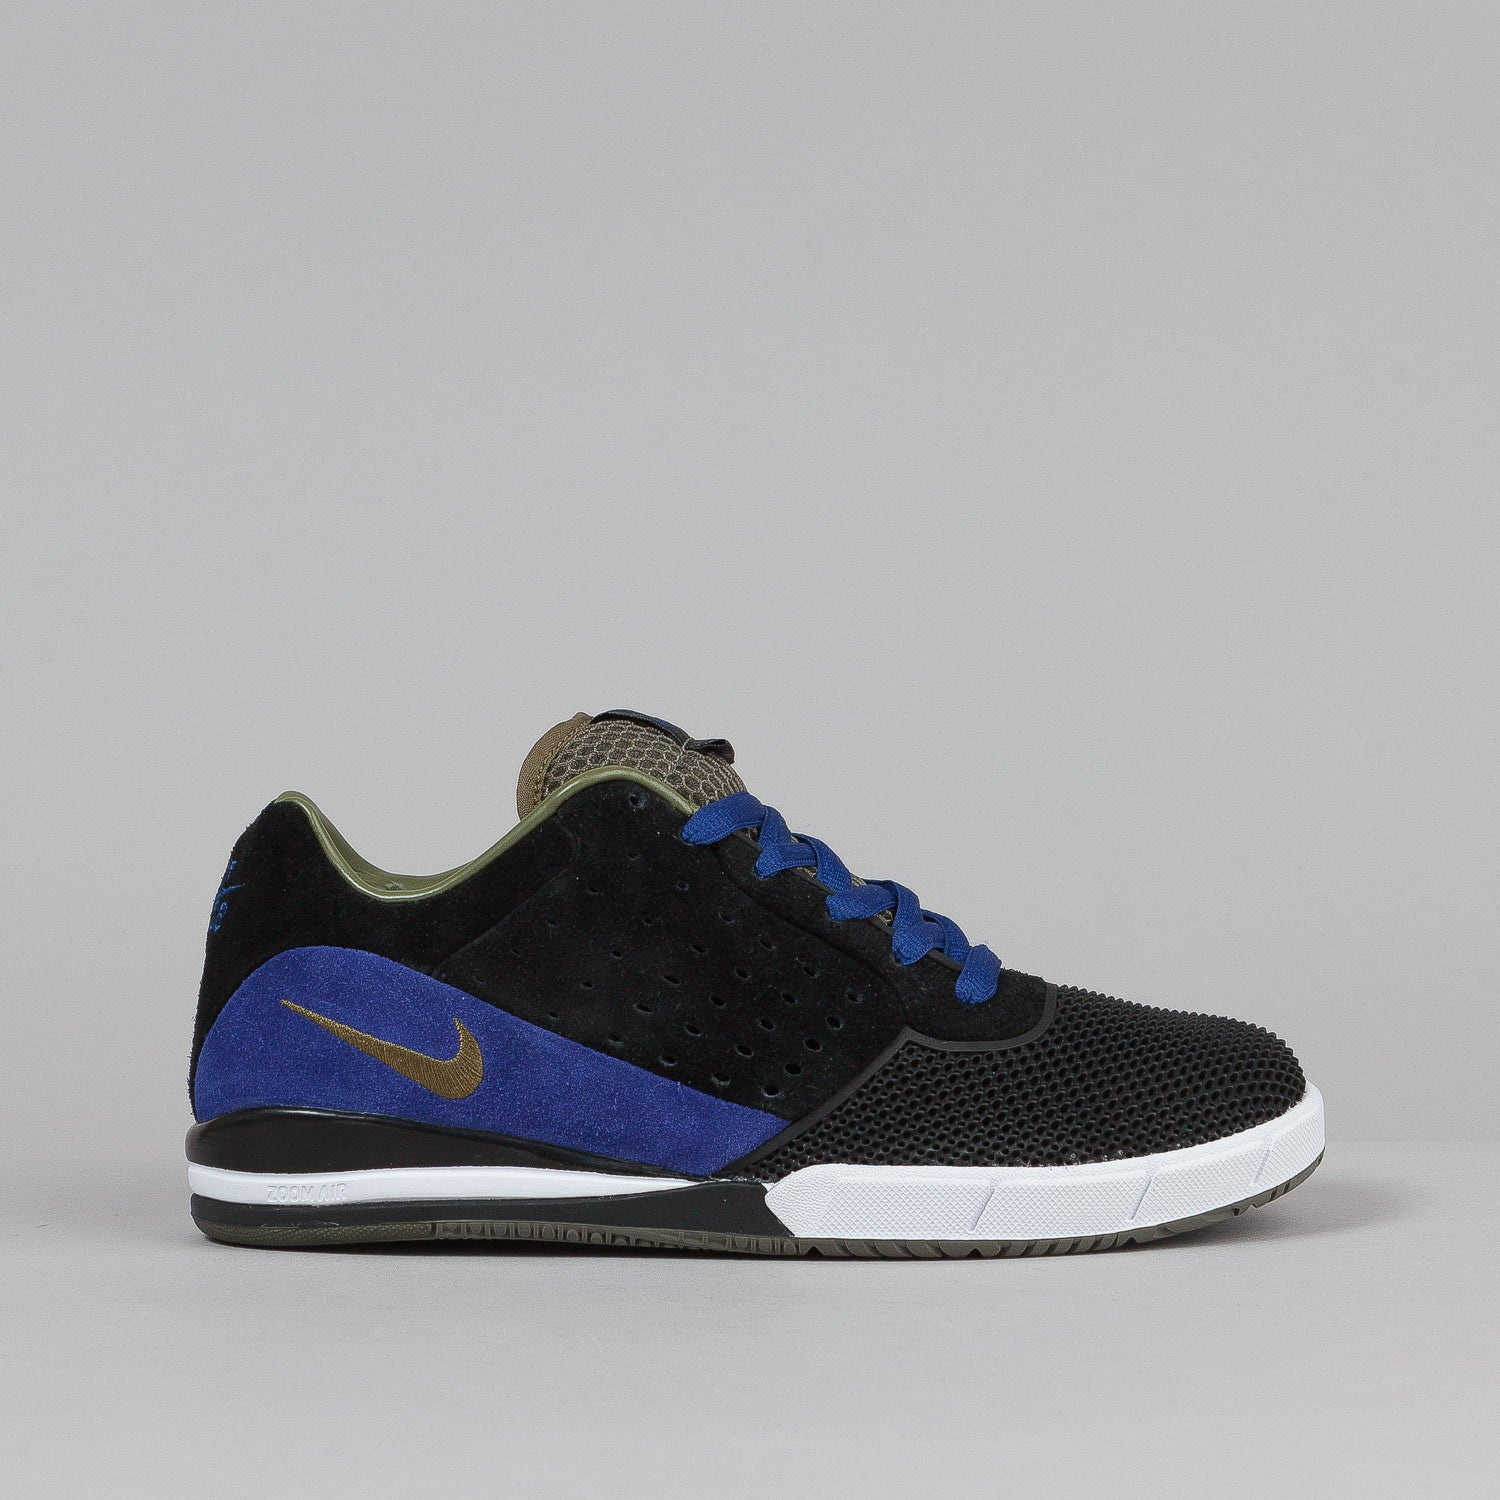 Nike SB Zoom Tre A.D. Shoes